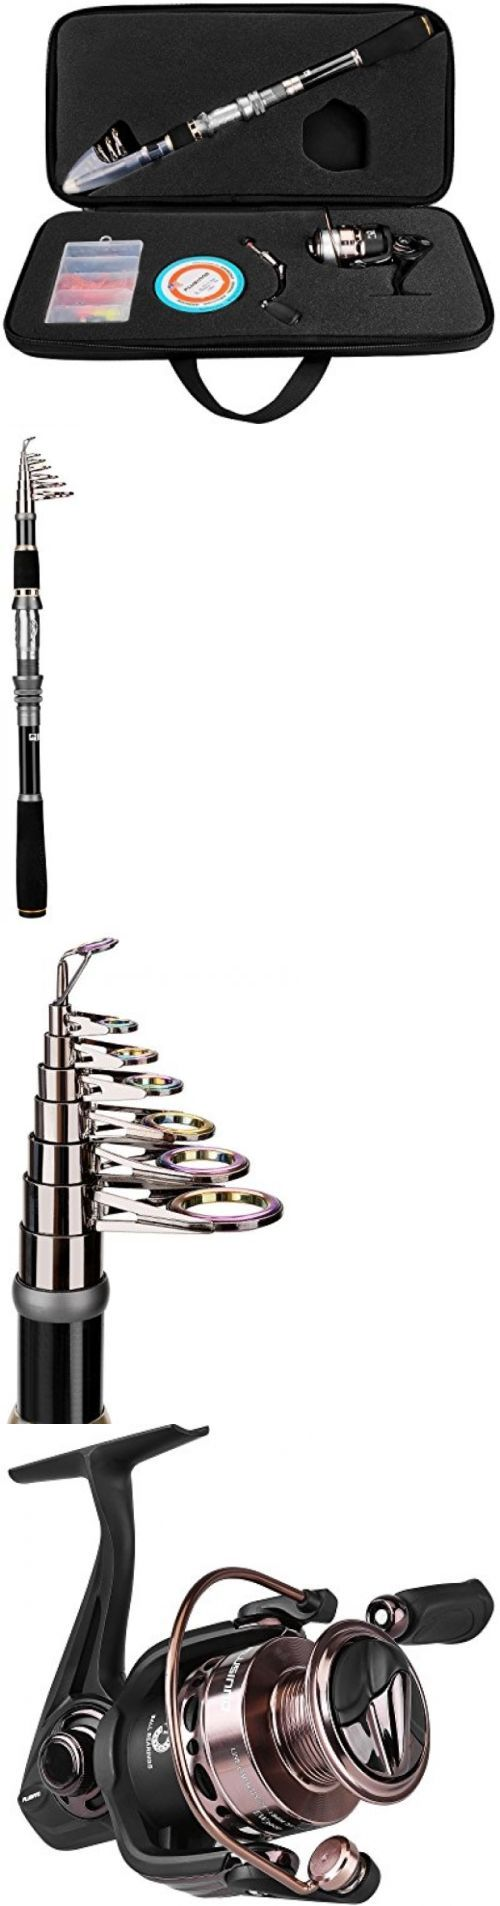 Other Rod and Reel Combos 179960: Plusinno Telescopic Fishing Rod And Reel Combos Full Kit, Spinning Fishing Gear -> BUY IT NOW ONLY: $73.24 on eBay!